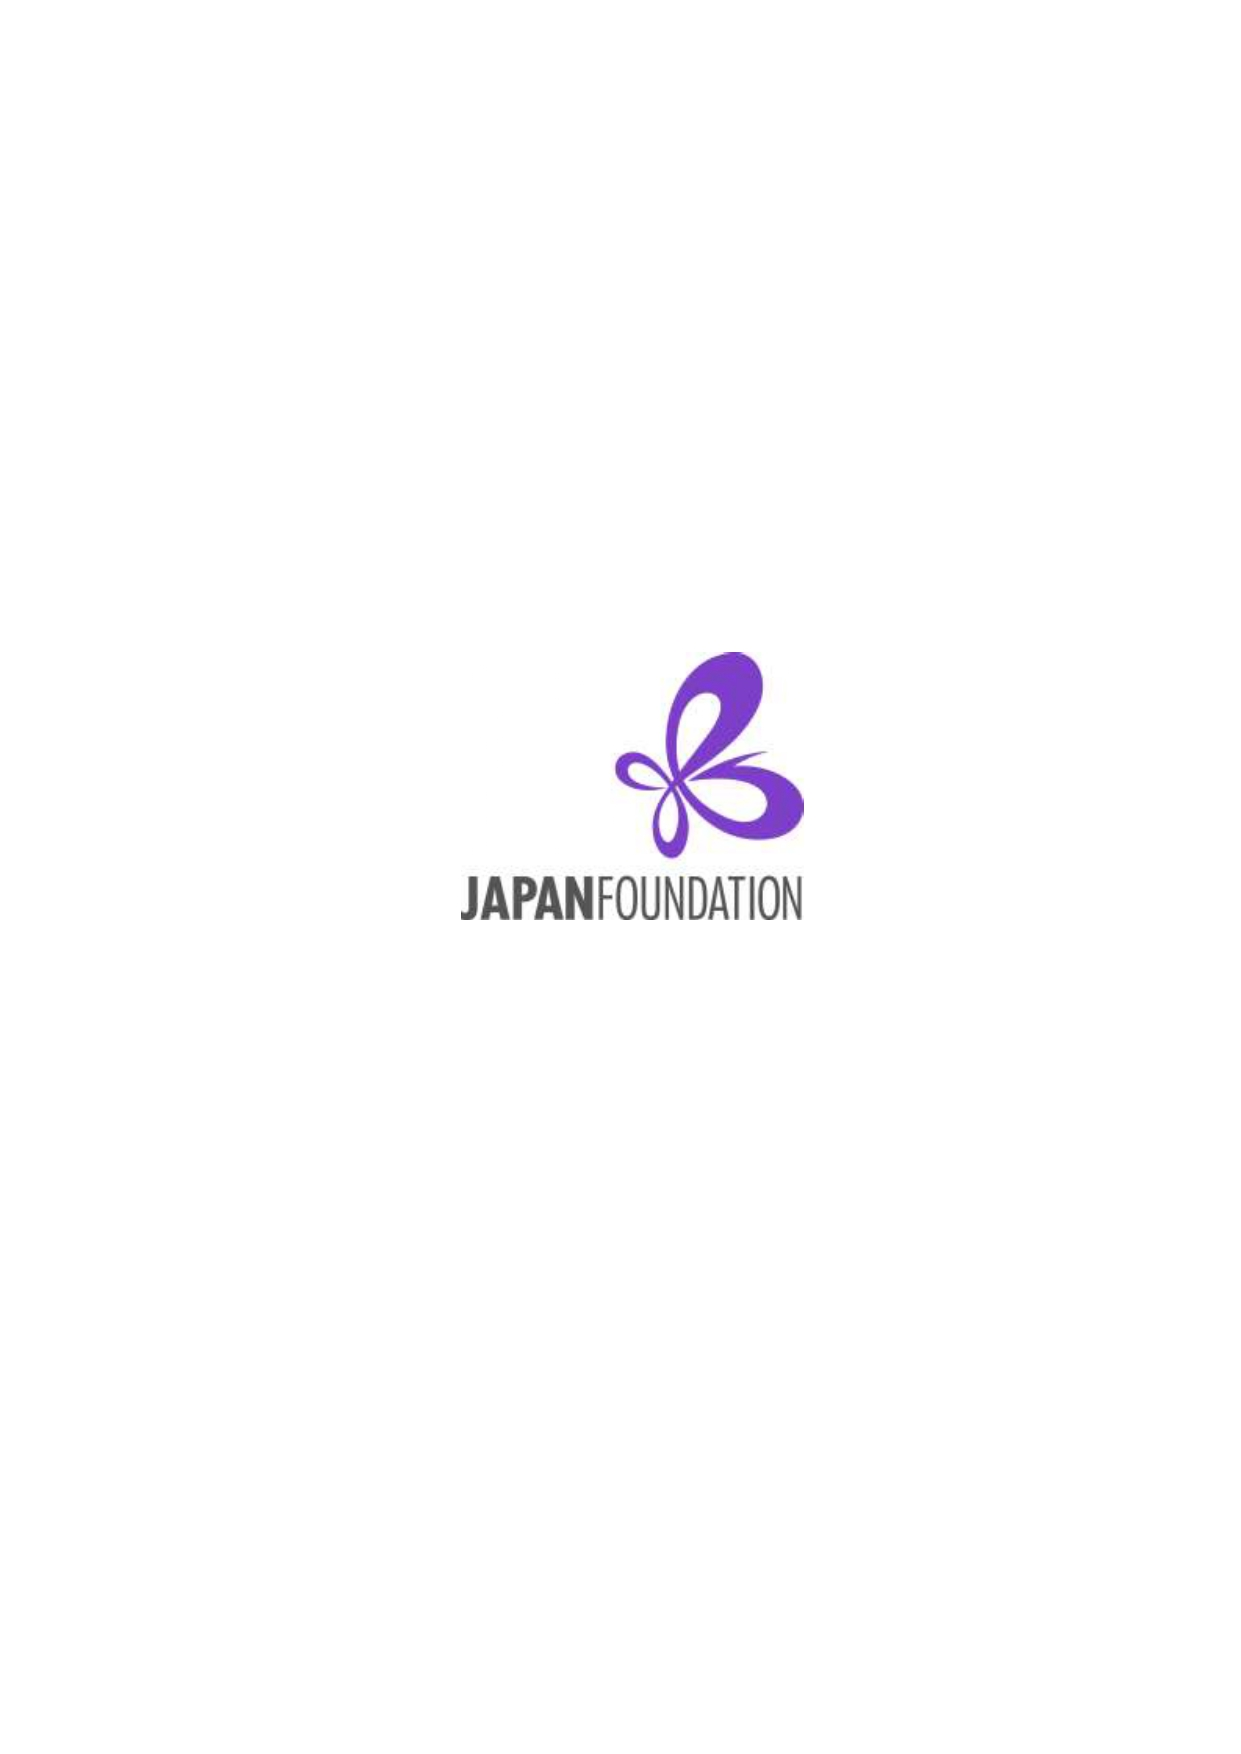 Call for Application for Part-time Japanese Language Teacher